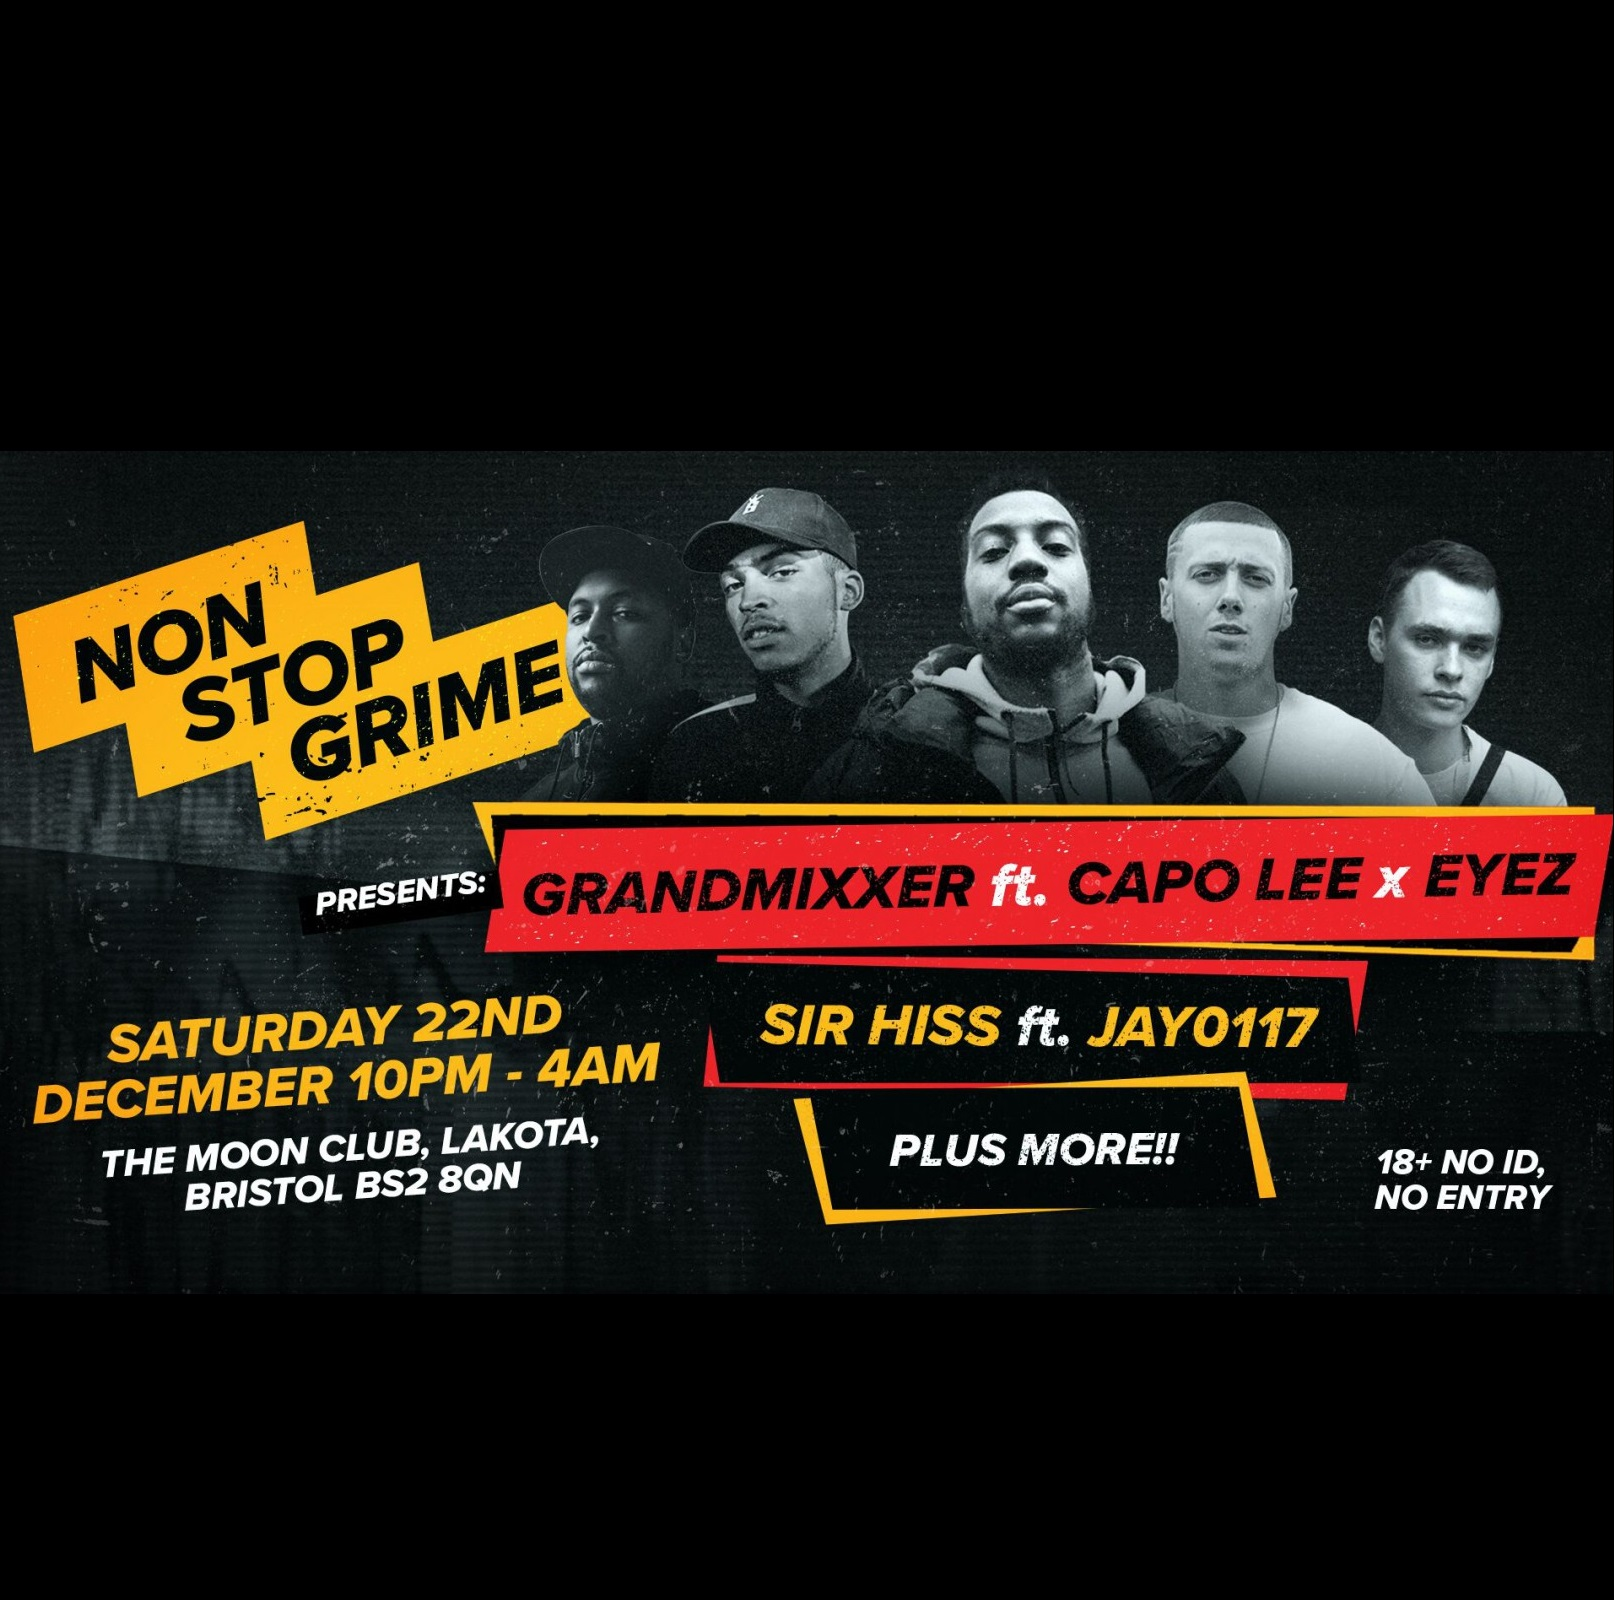 NonStopGrime presents: Grandmixxer ft Capo Lee x Eyez